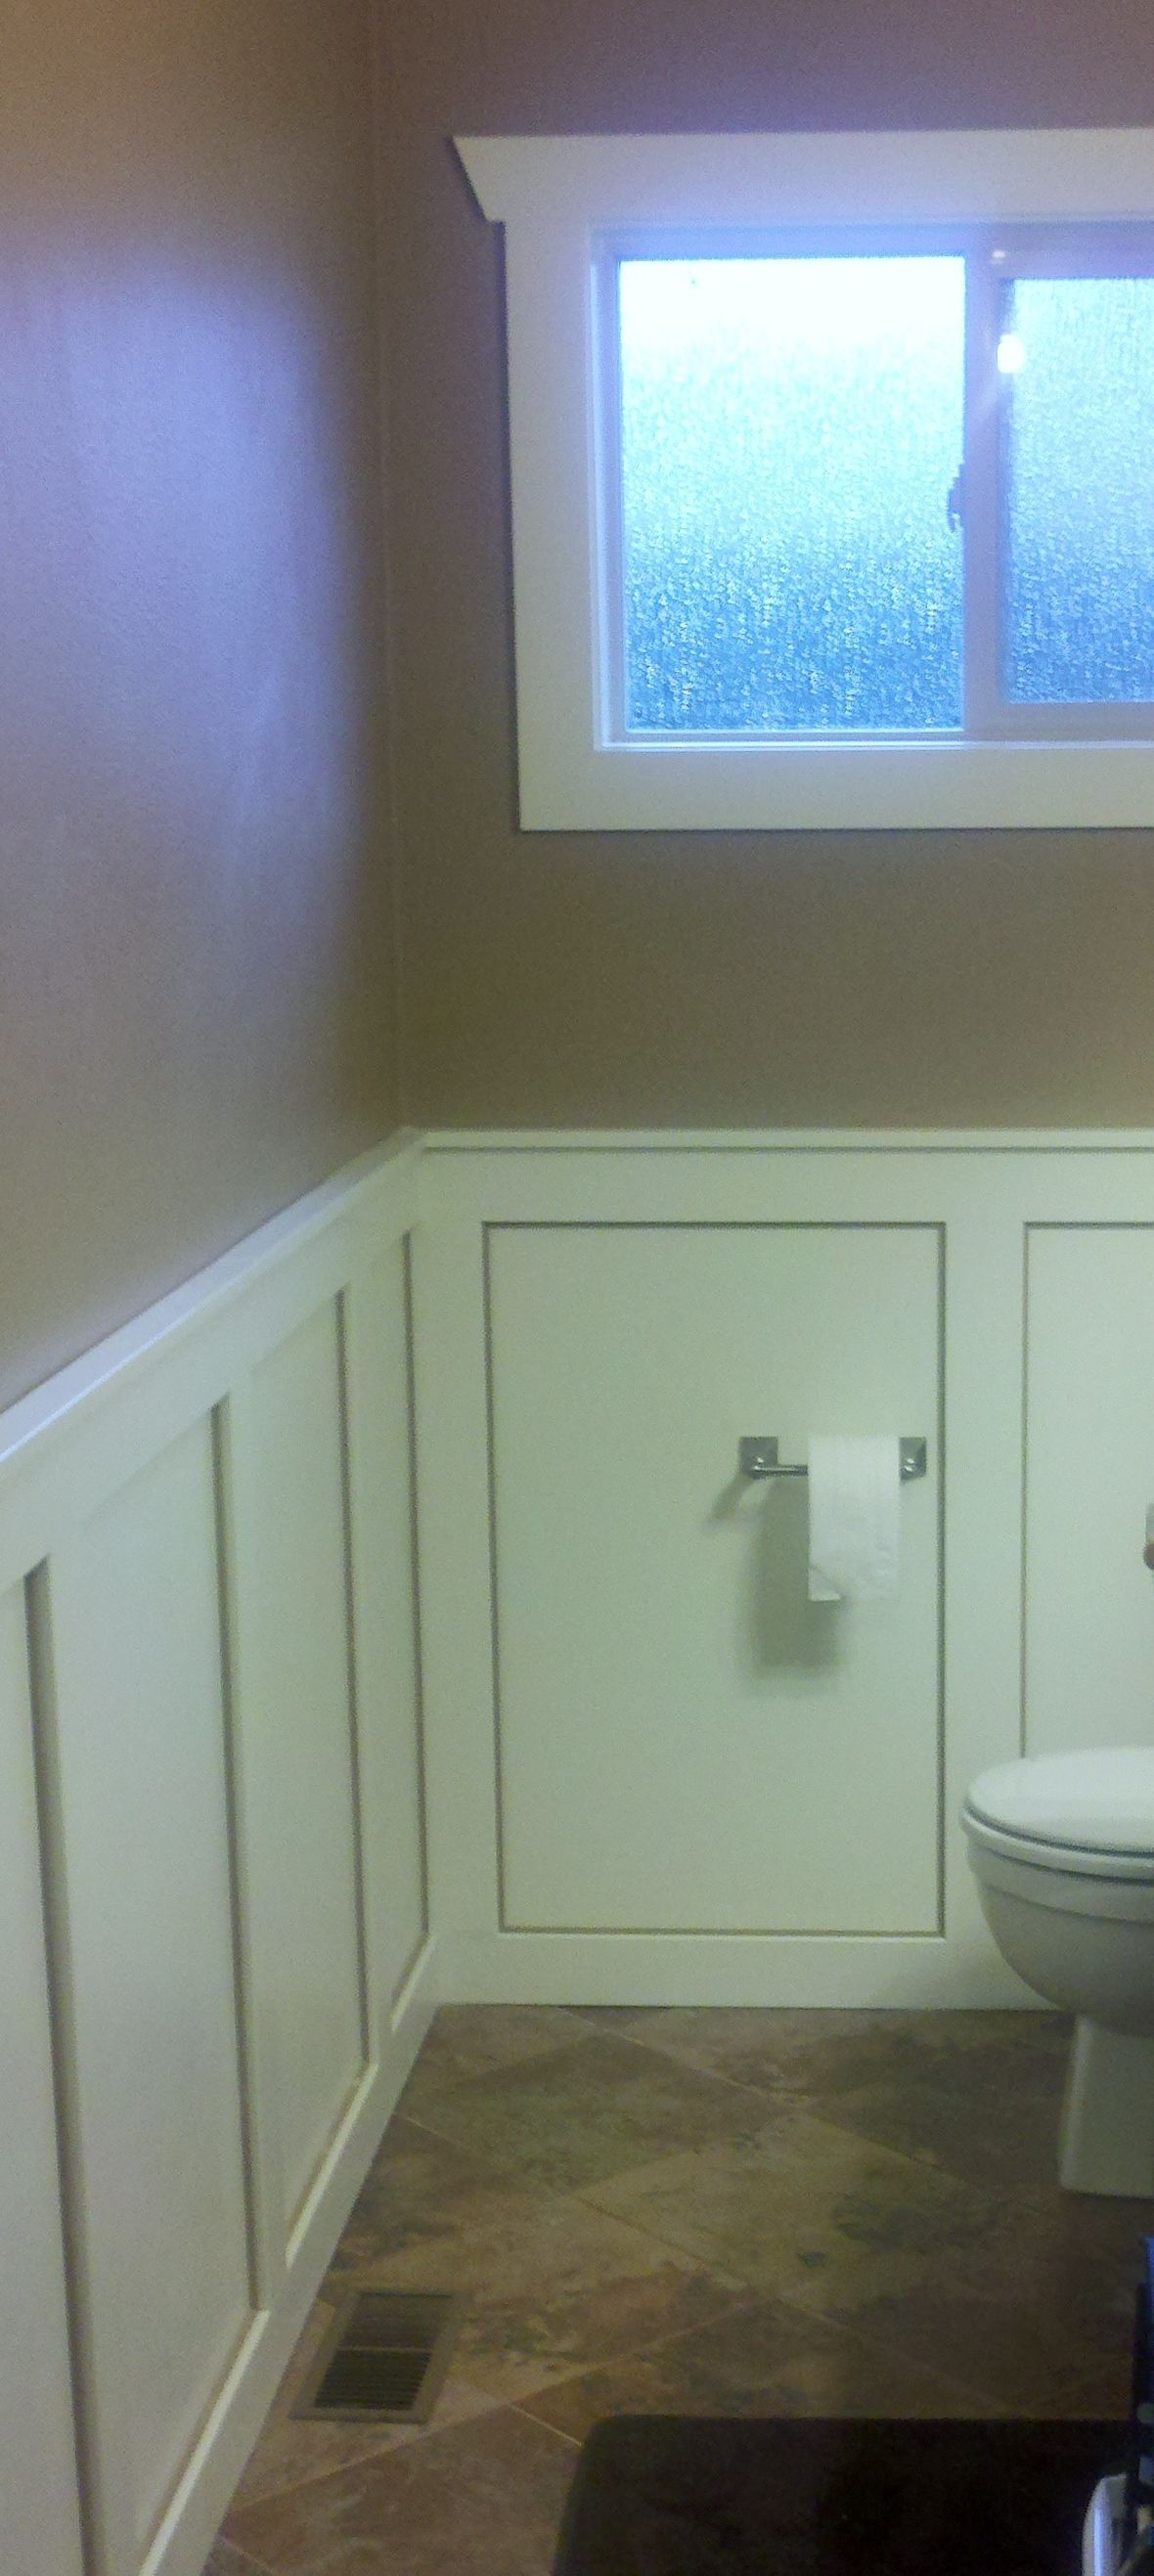 Bathroom remodel project wainscoting made a very tunnel like